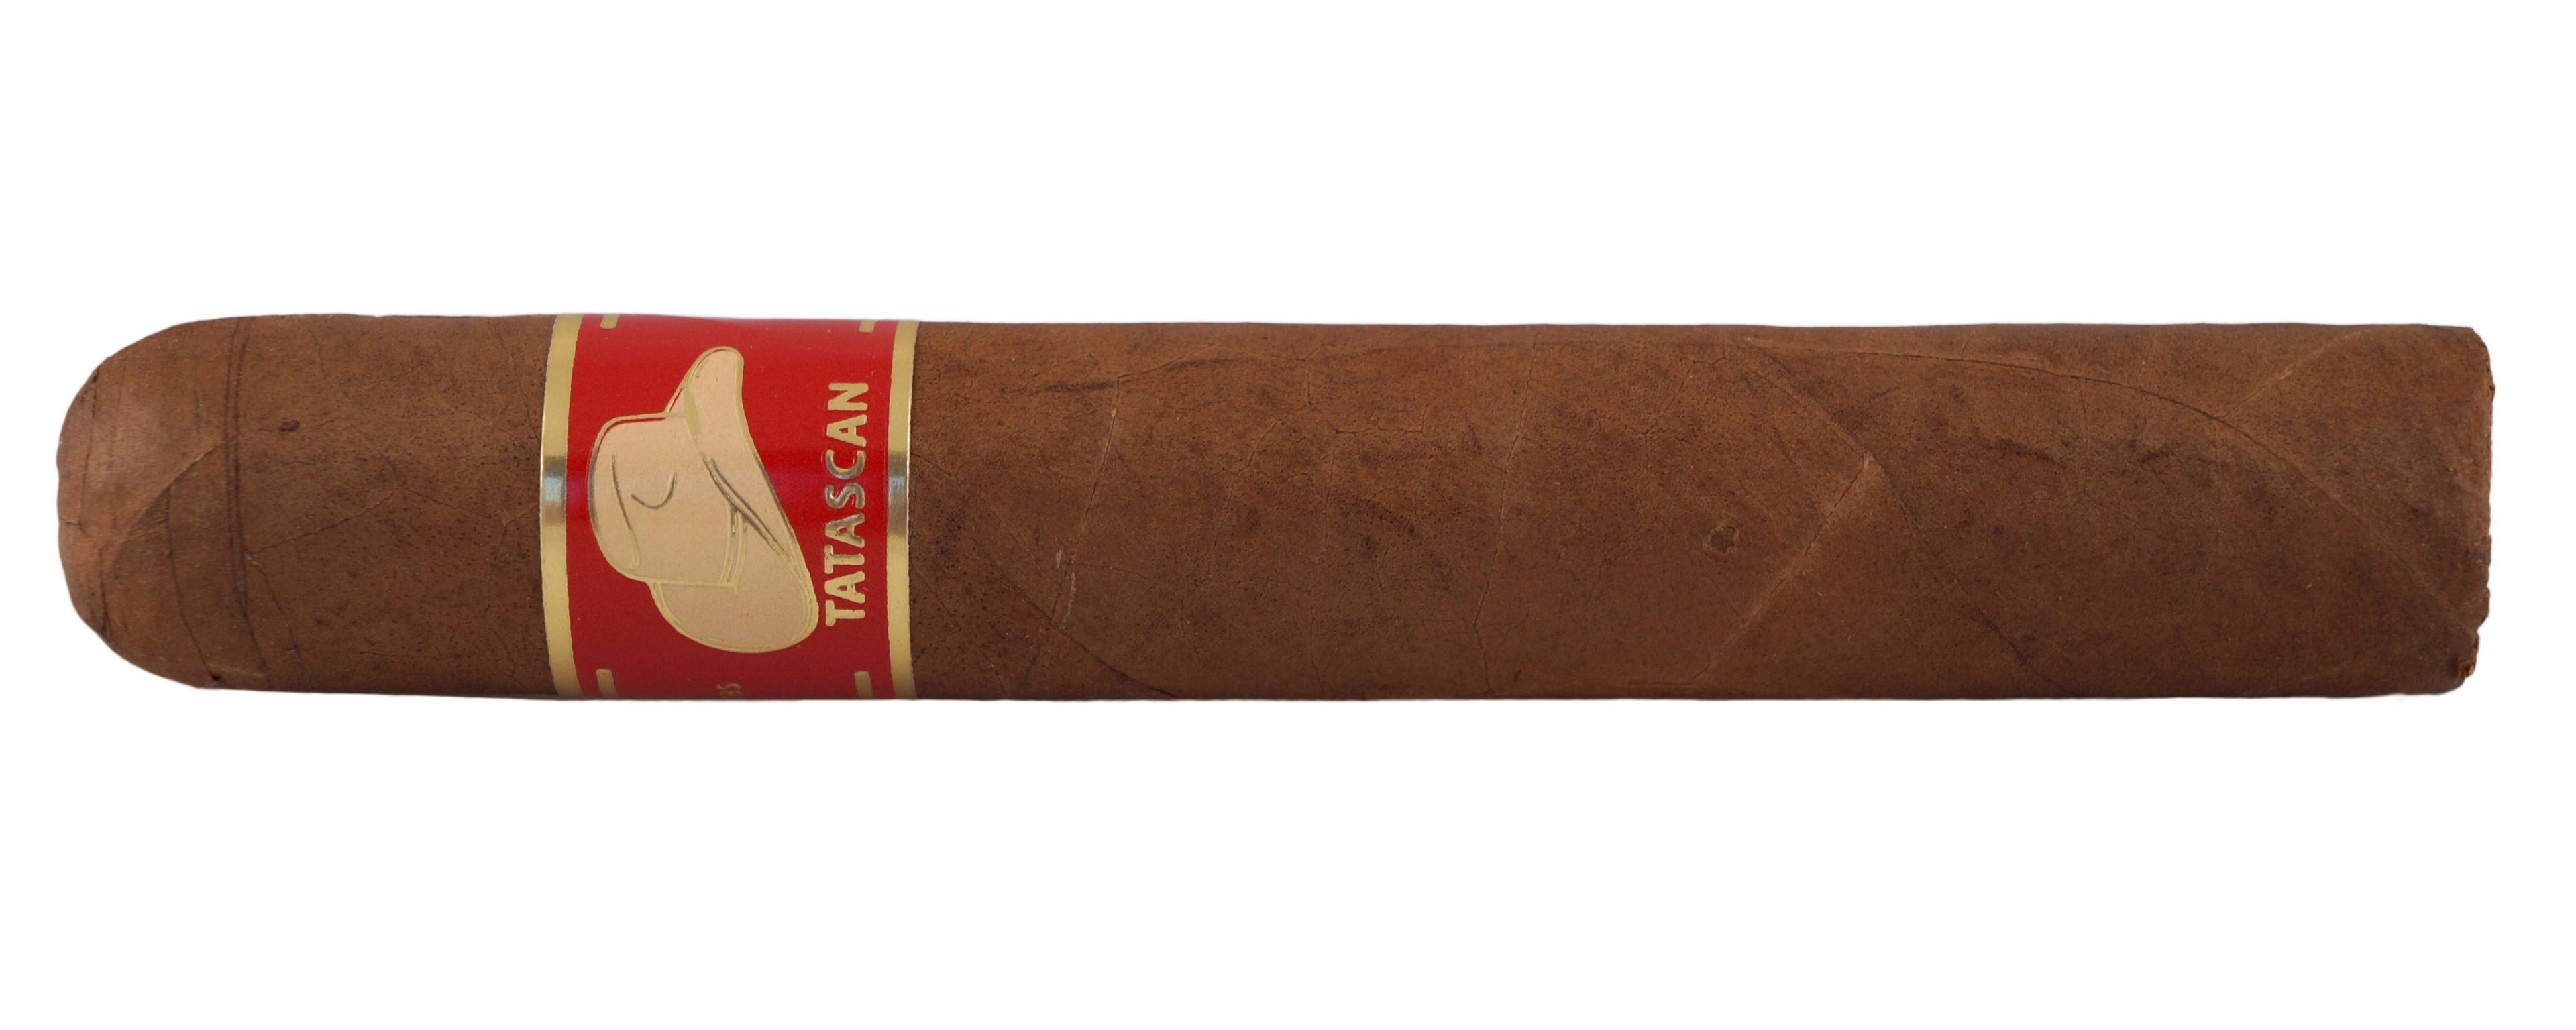 Blind Cigar Review: Tatascan | Robusto